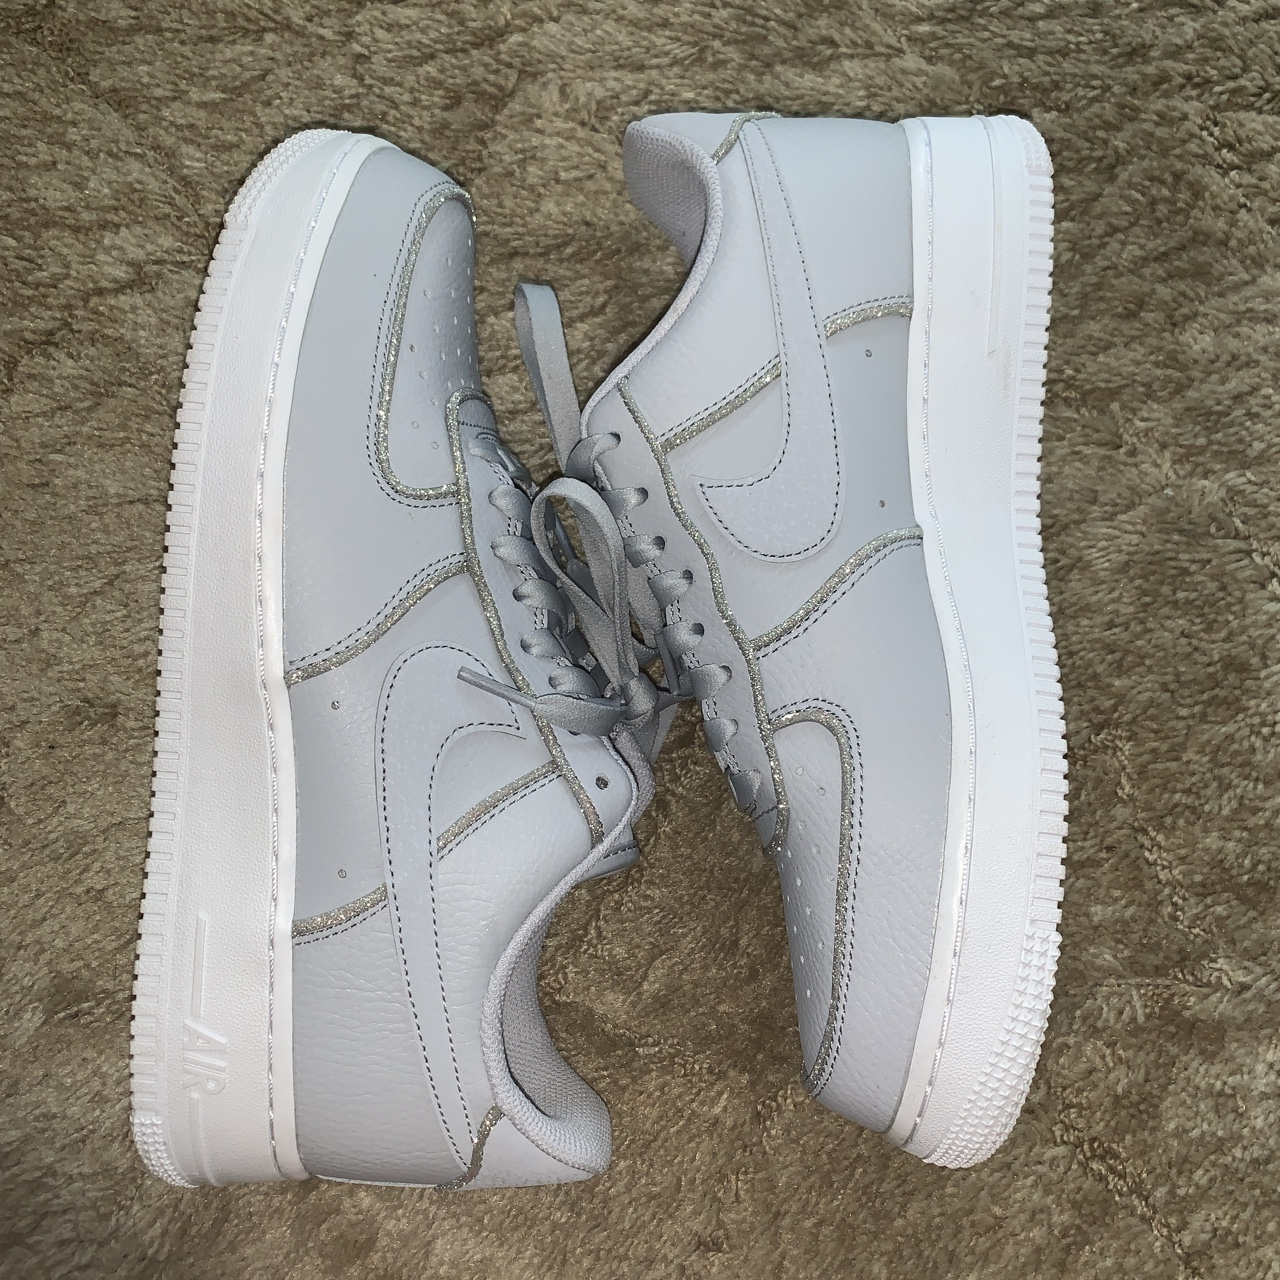 Nike Air Force 1 Condition: excellent, worn once Depop